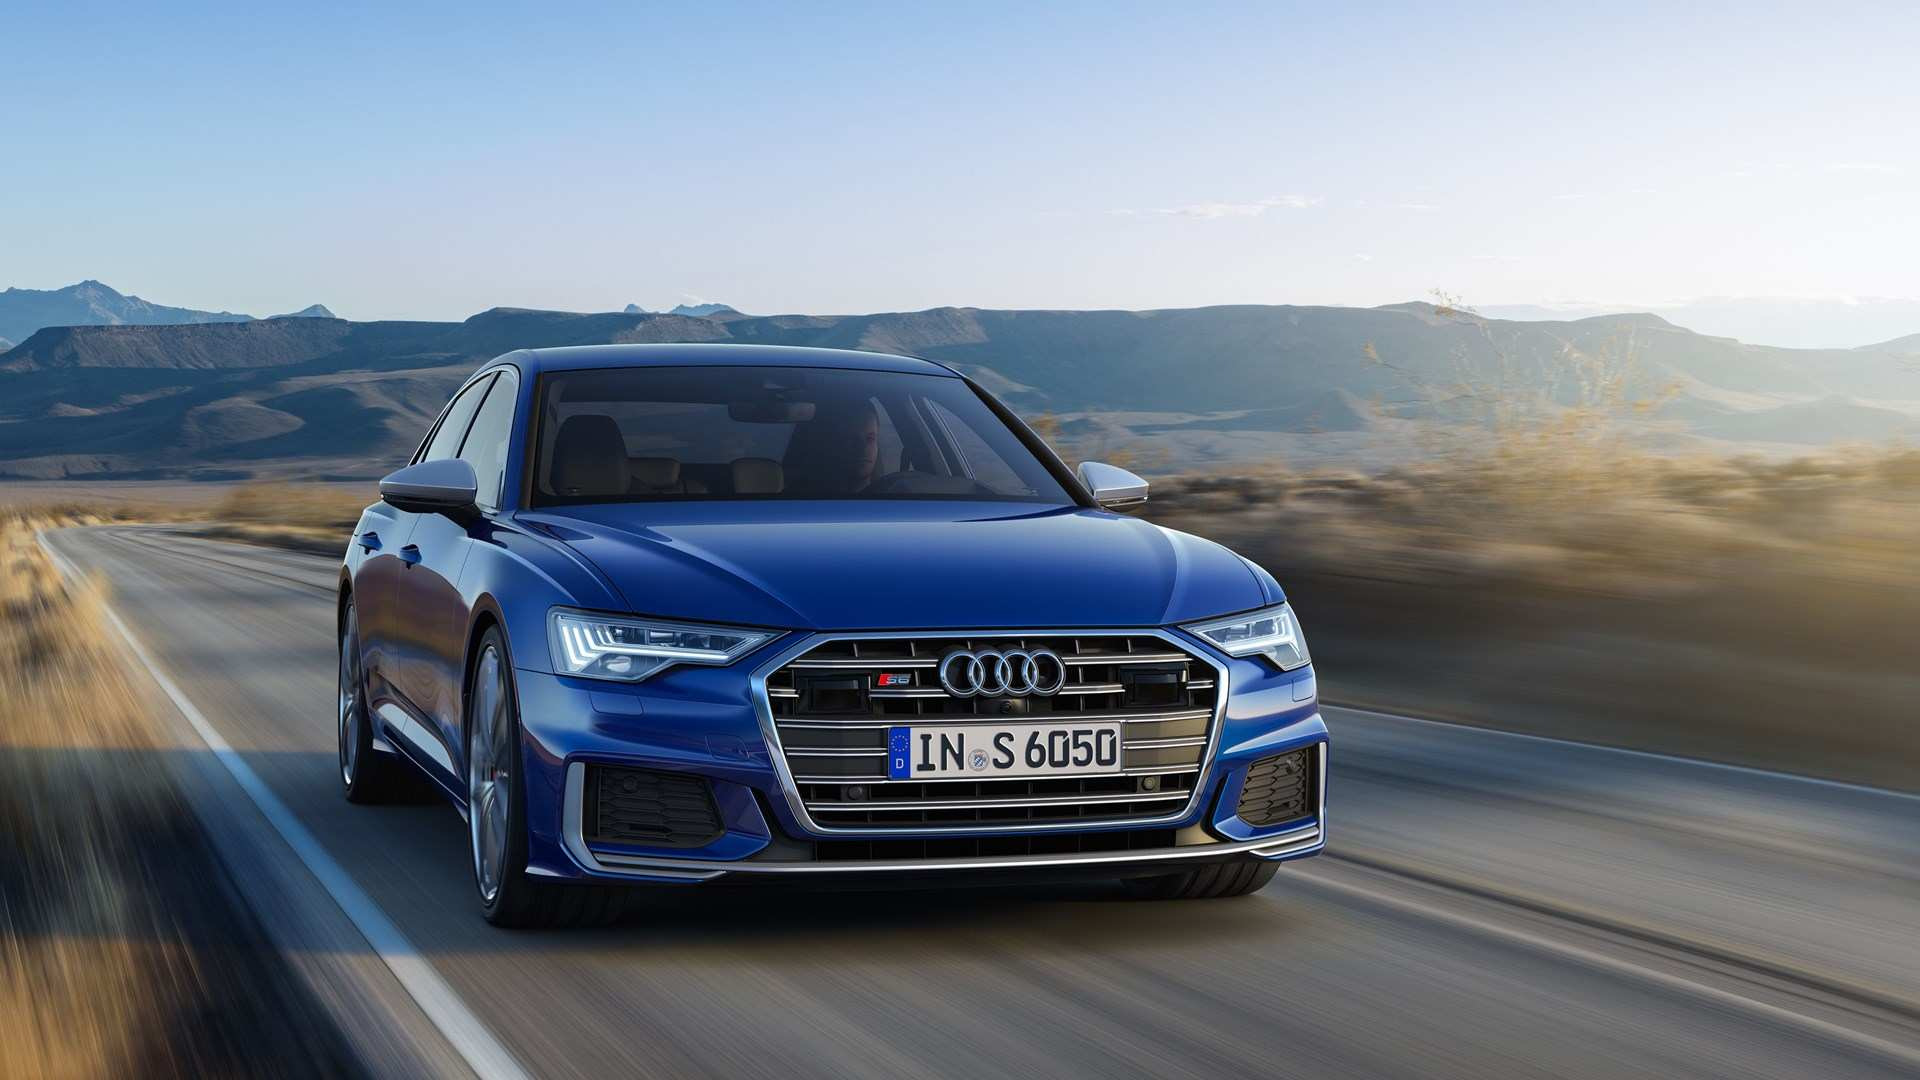 32 The Best 2020 Audi S7 Price And Release Date